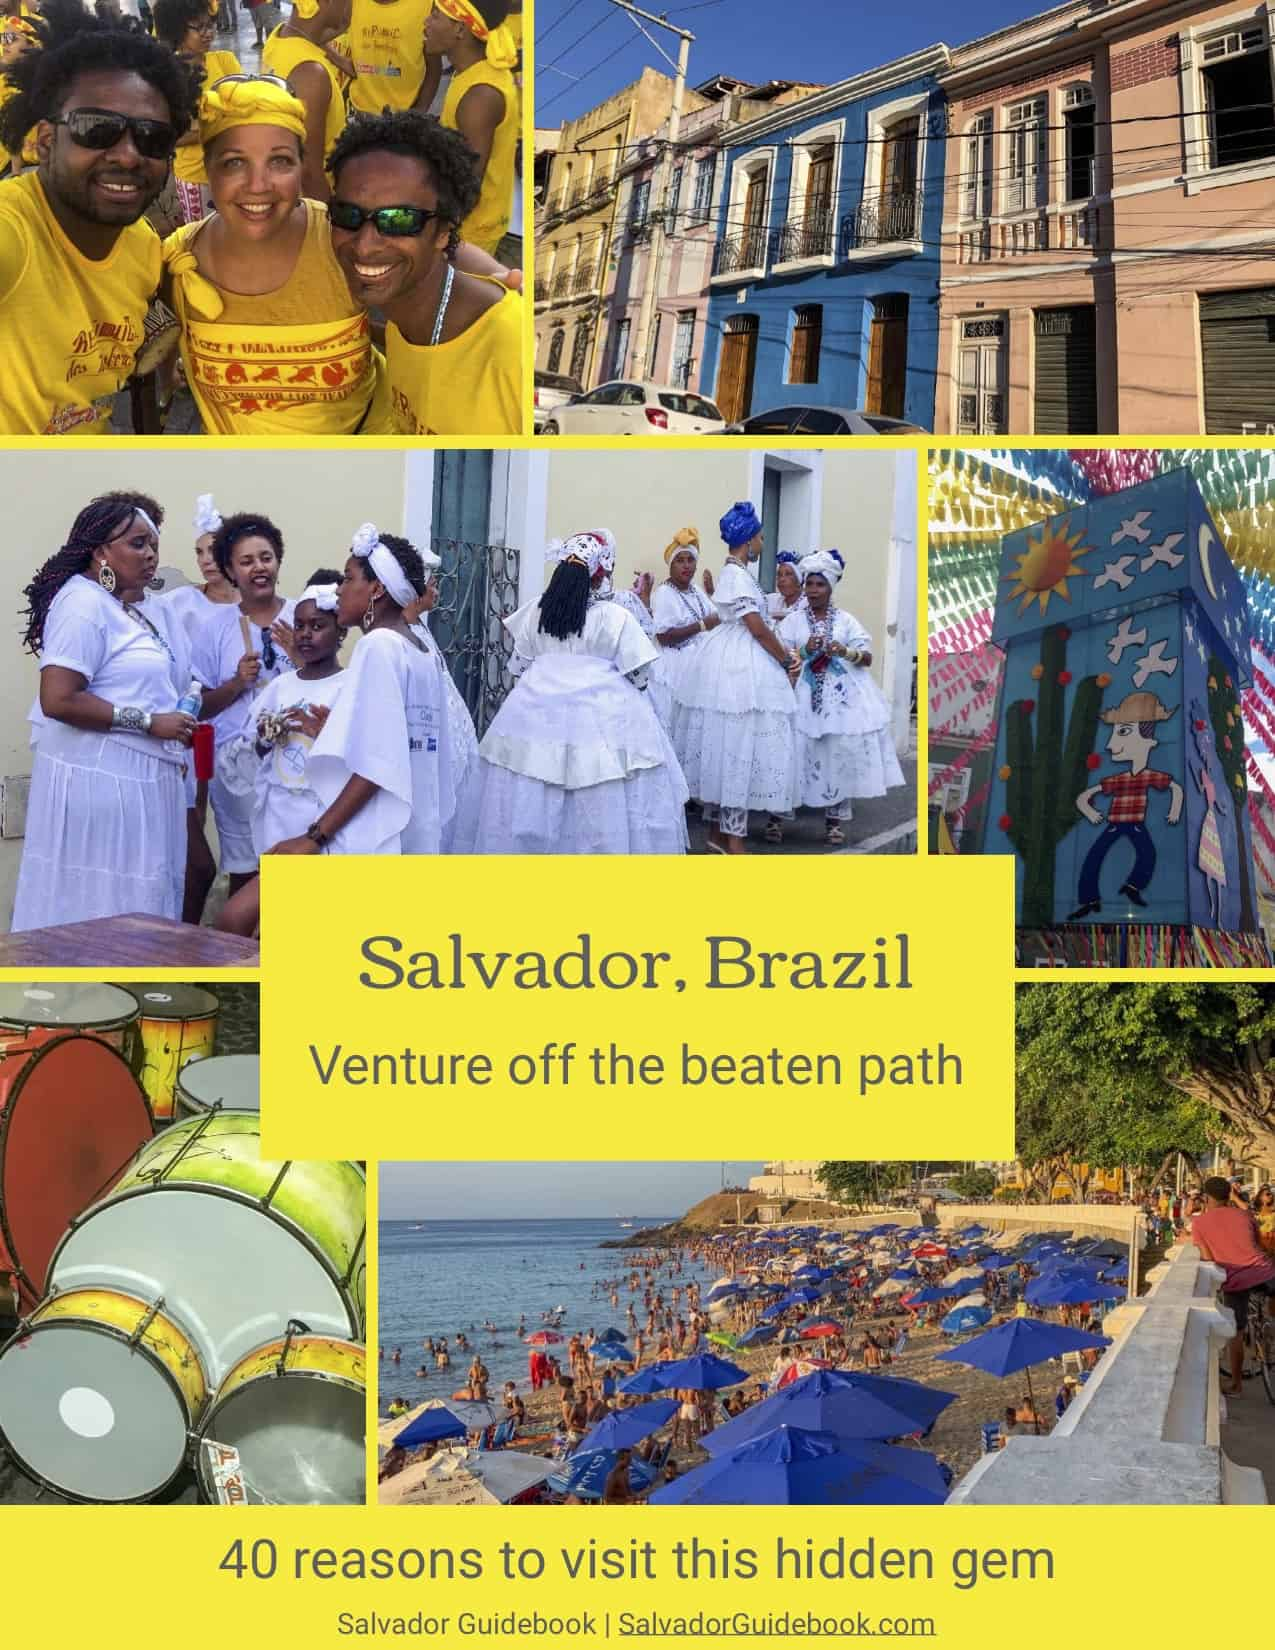 Collage of images of Salvador